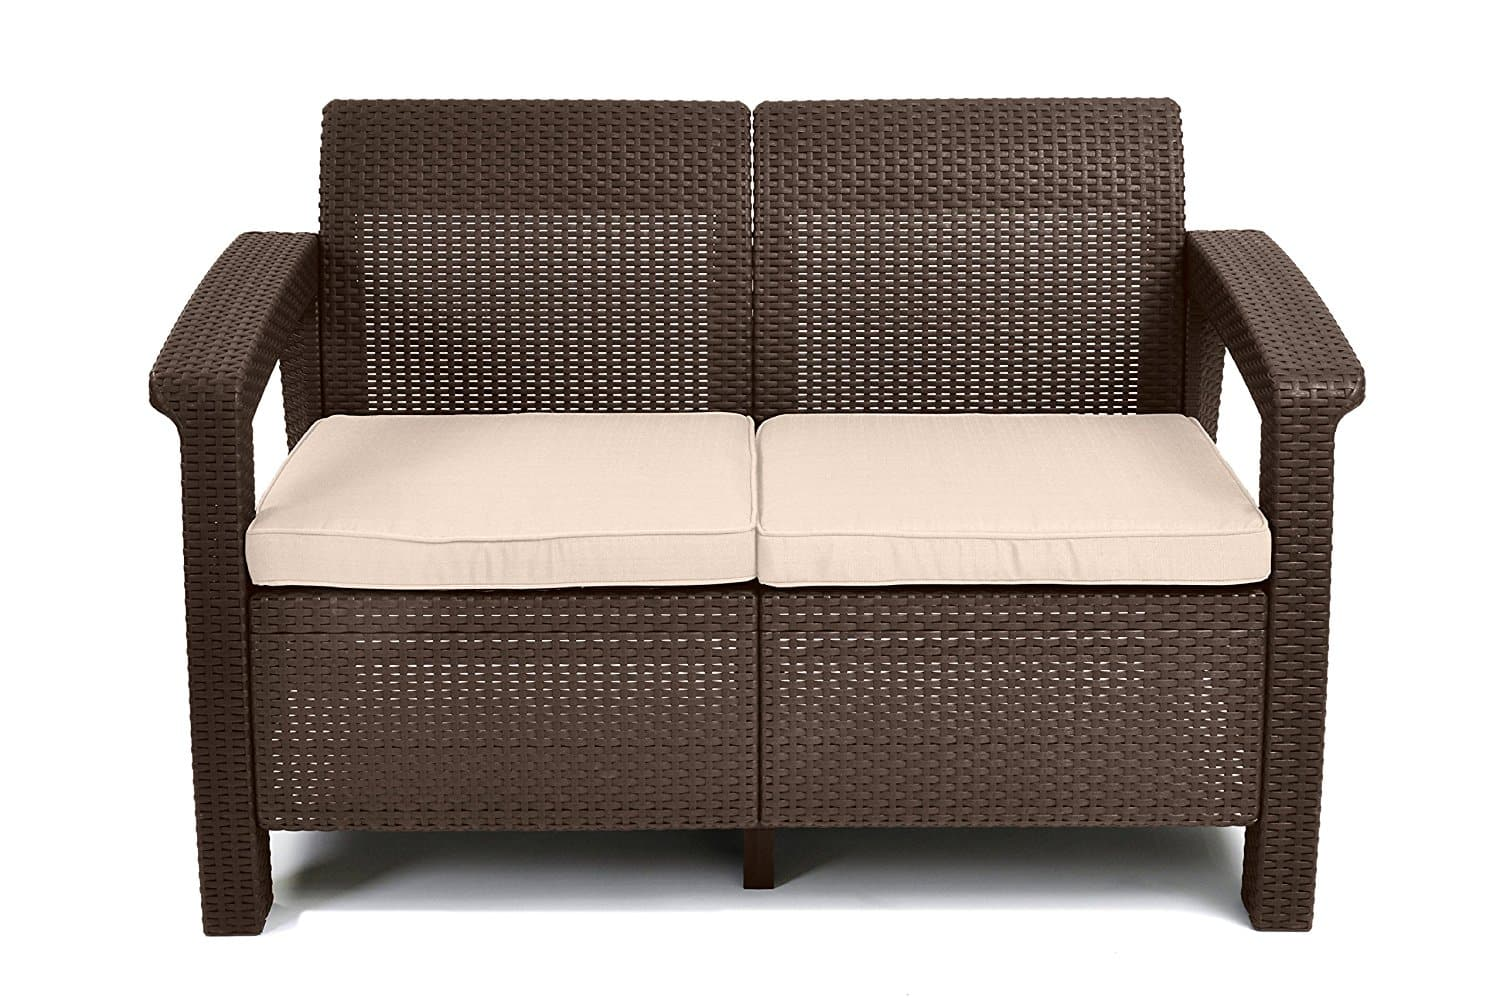 Stunning Keter Corfu Patio Outdoor Loveseat with Cushion on Amazon Free Prime Ship